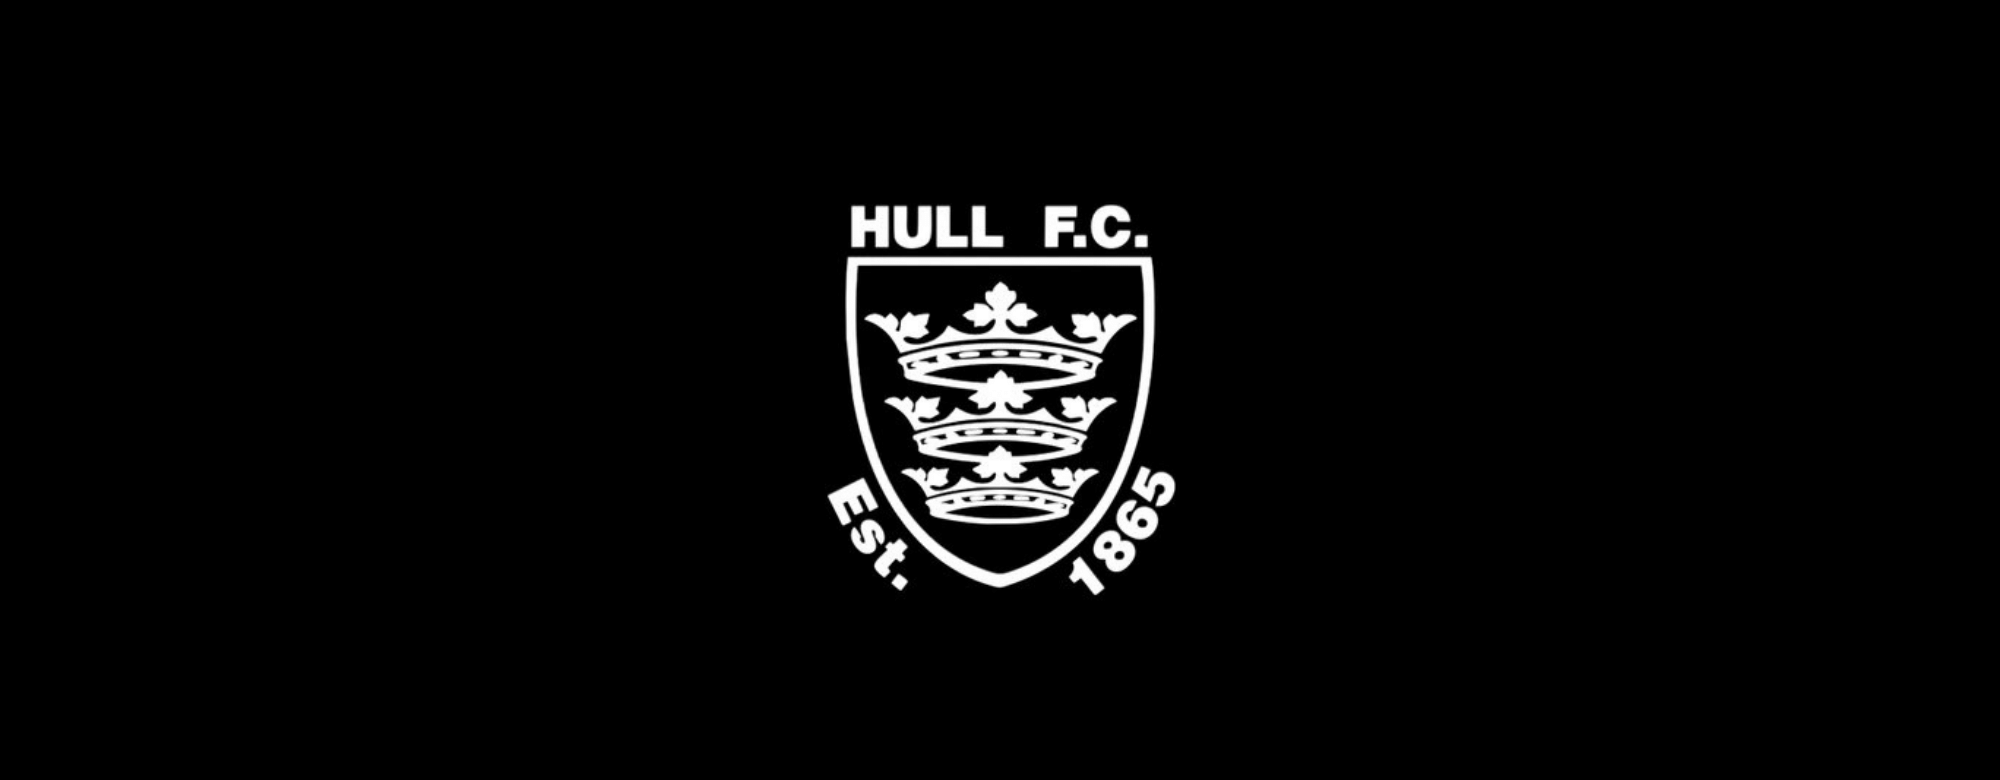 Hull FC Supporting Social Media Boycott This Weekend